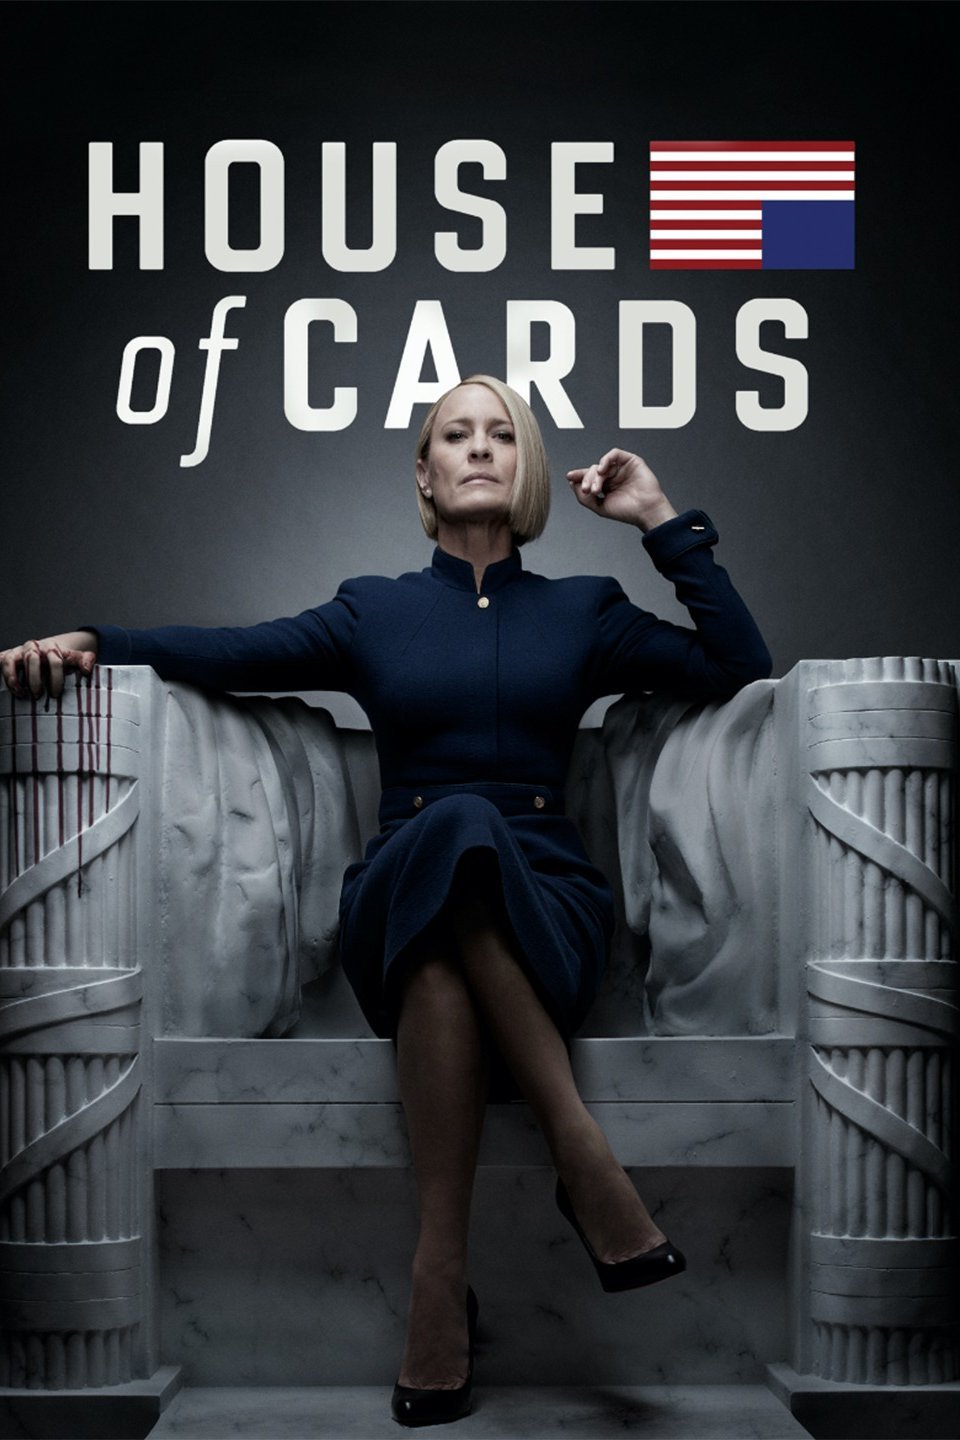 House of Cards (US TV Series)